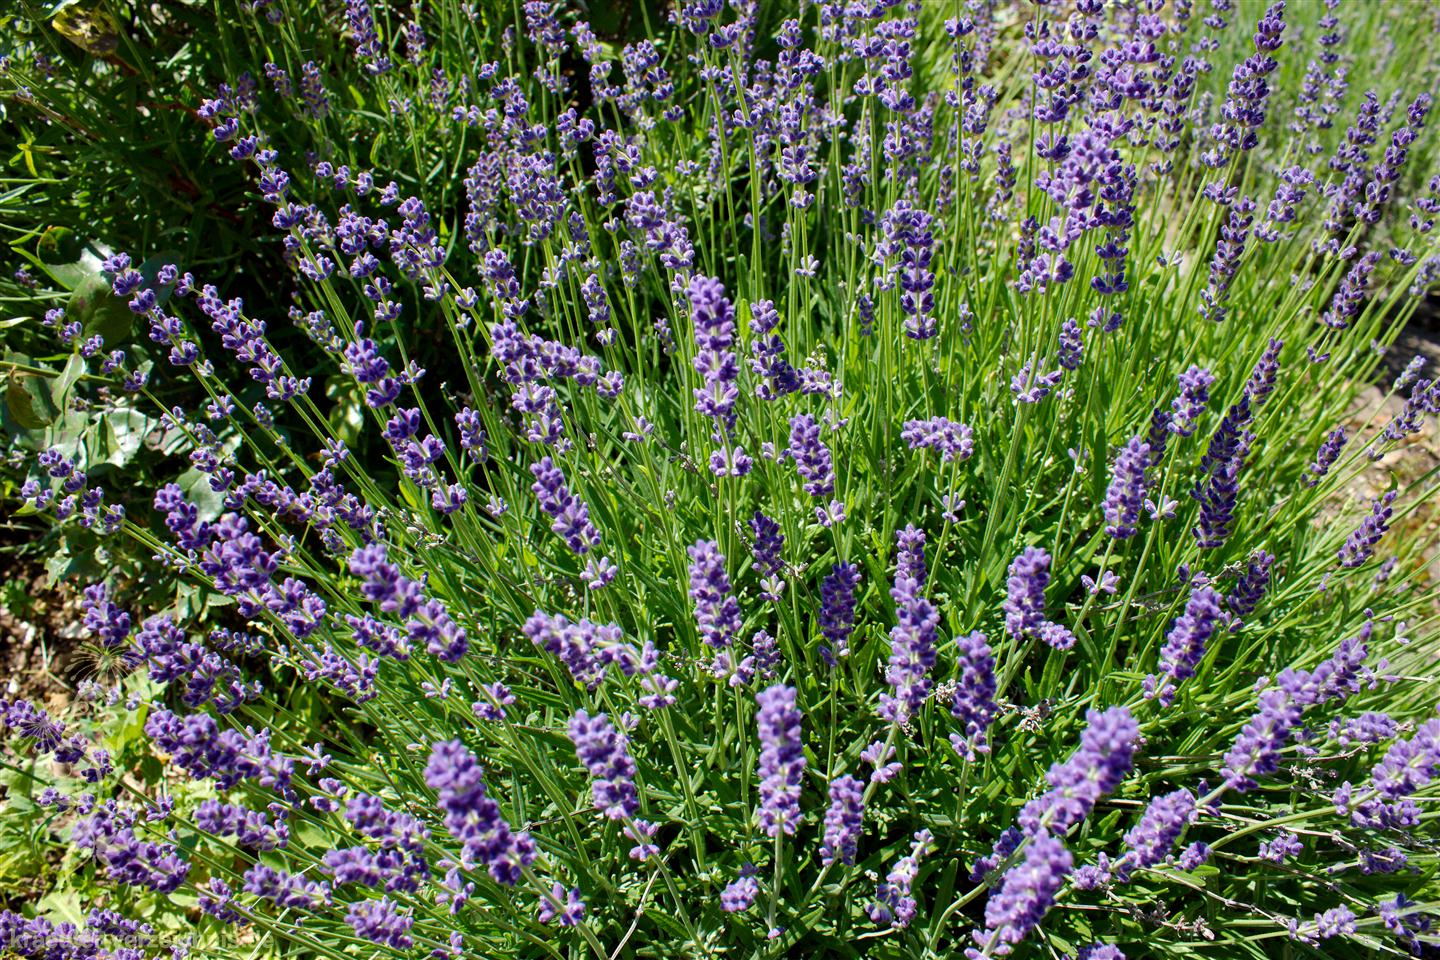 lavendel pflege lavendel pflege lavendel schneiden pflege lavandula lavendel pflege in garten. Black Bedroom Furniture Sets. Home Design Ideas